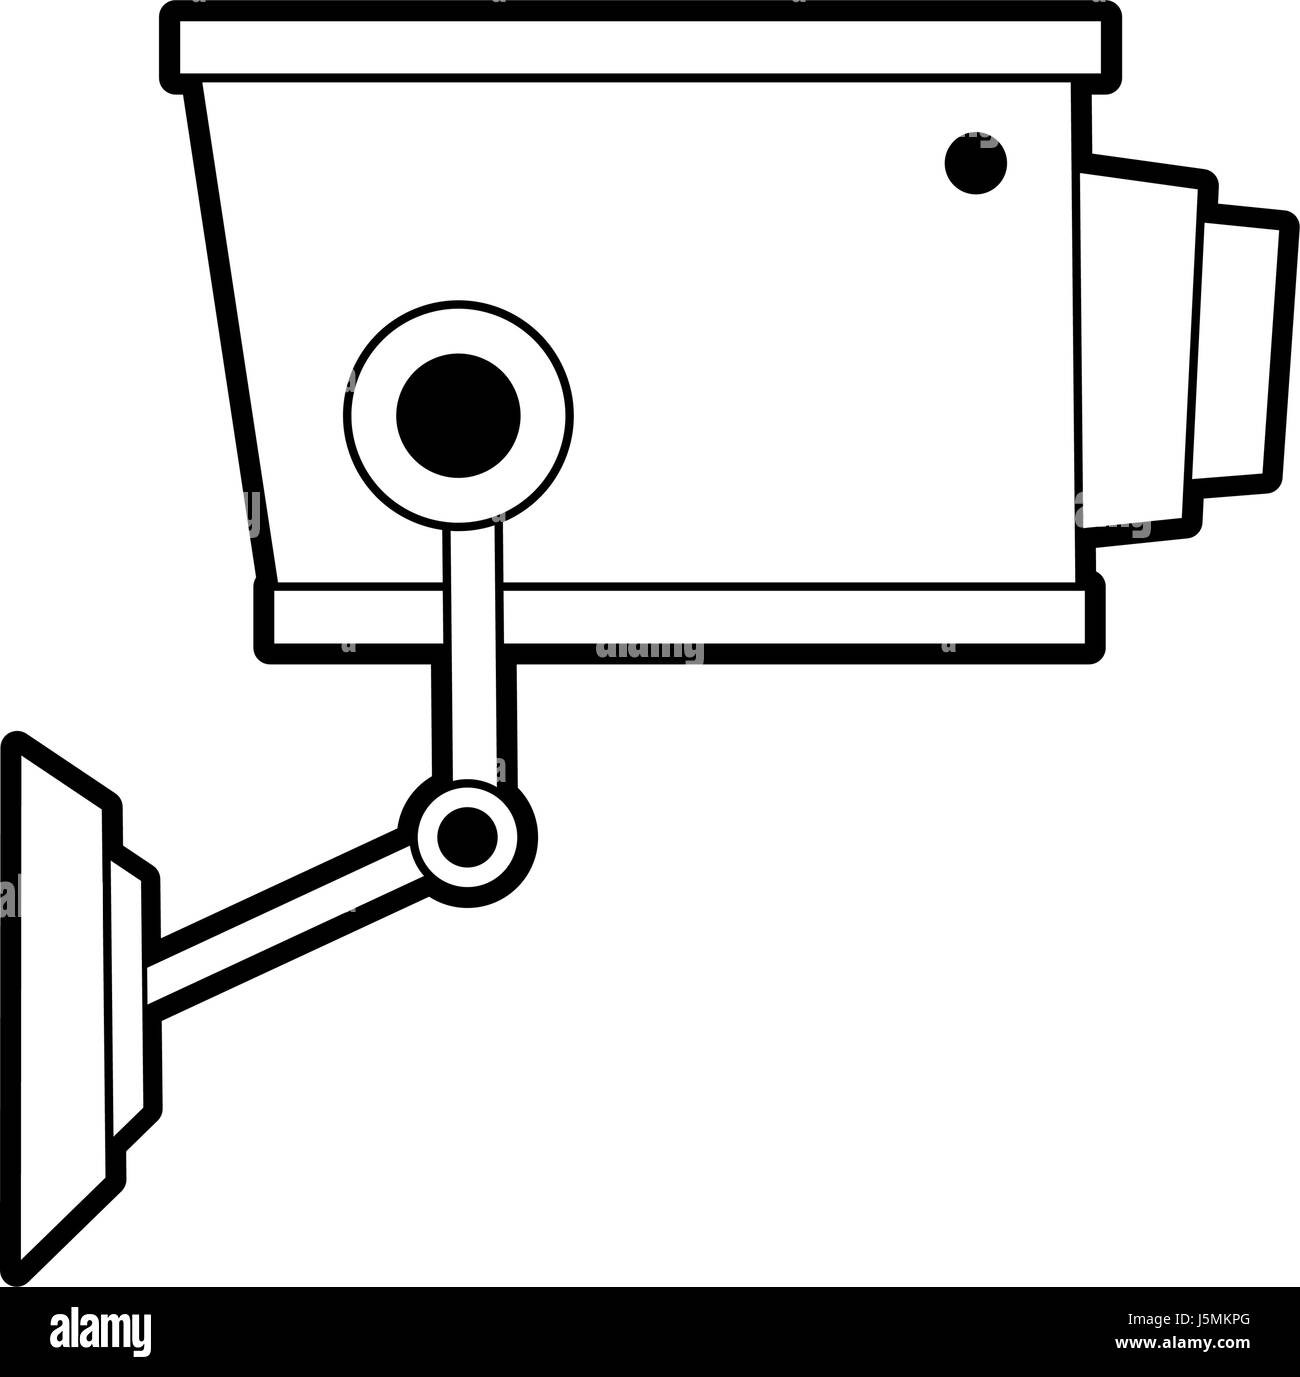 sketch silhouette image infrared surveillance camera icon - Stock Image